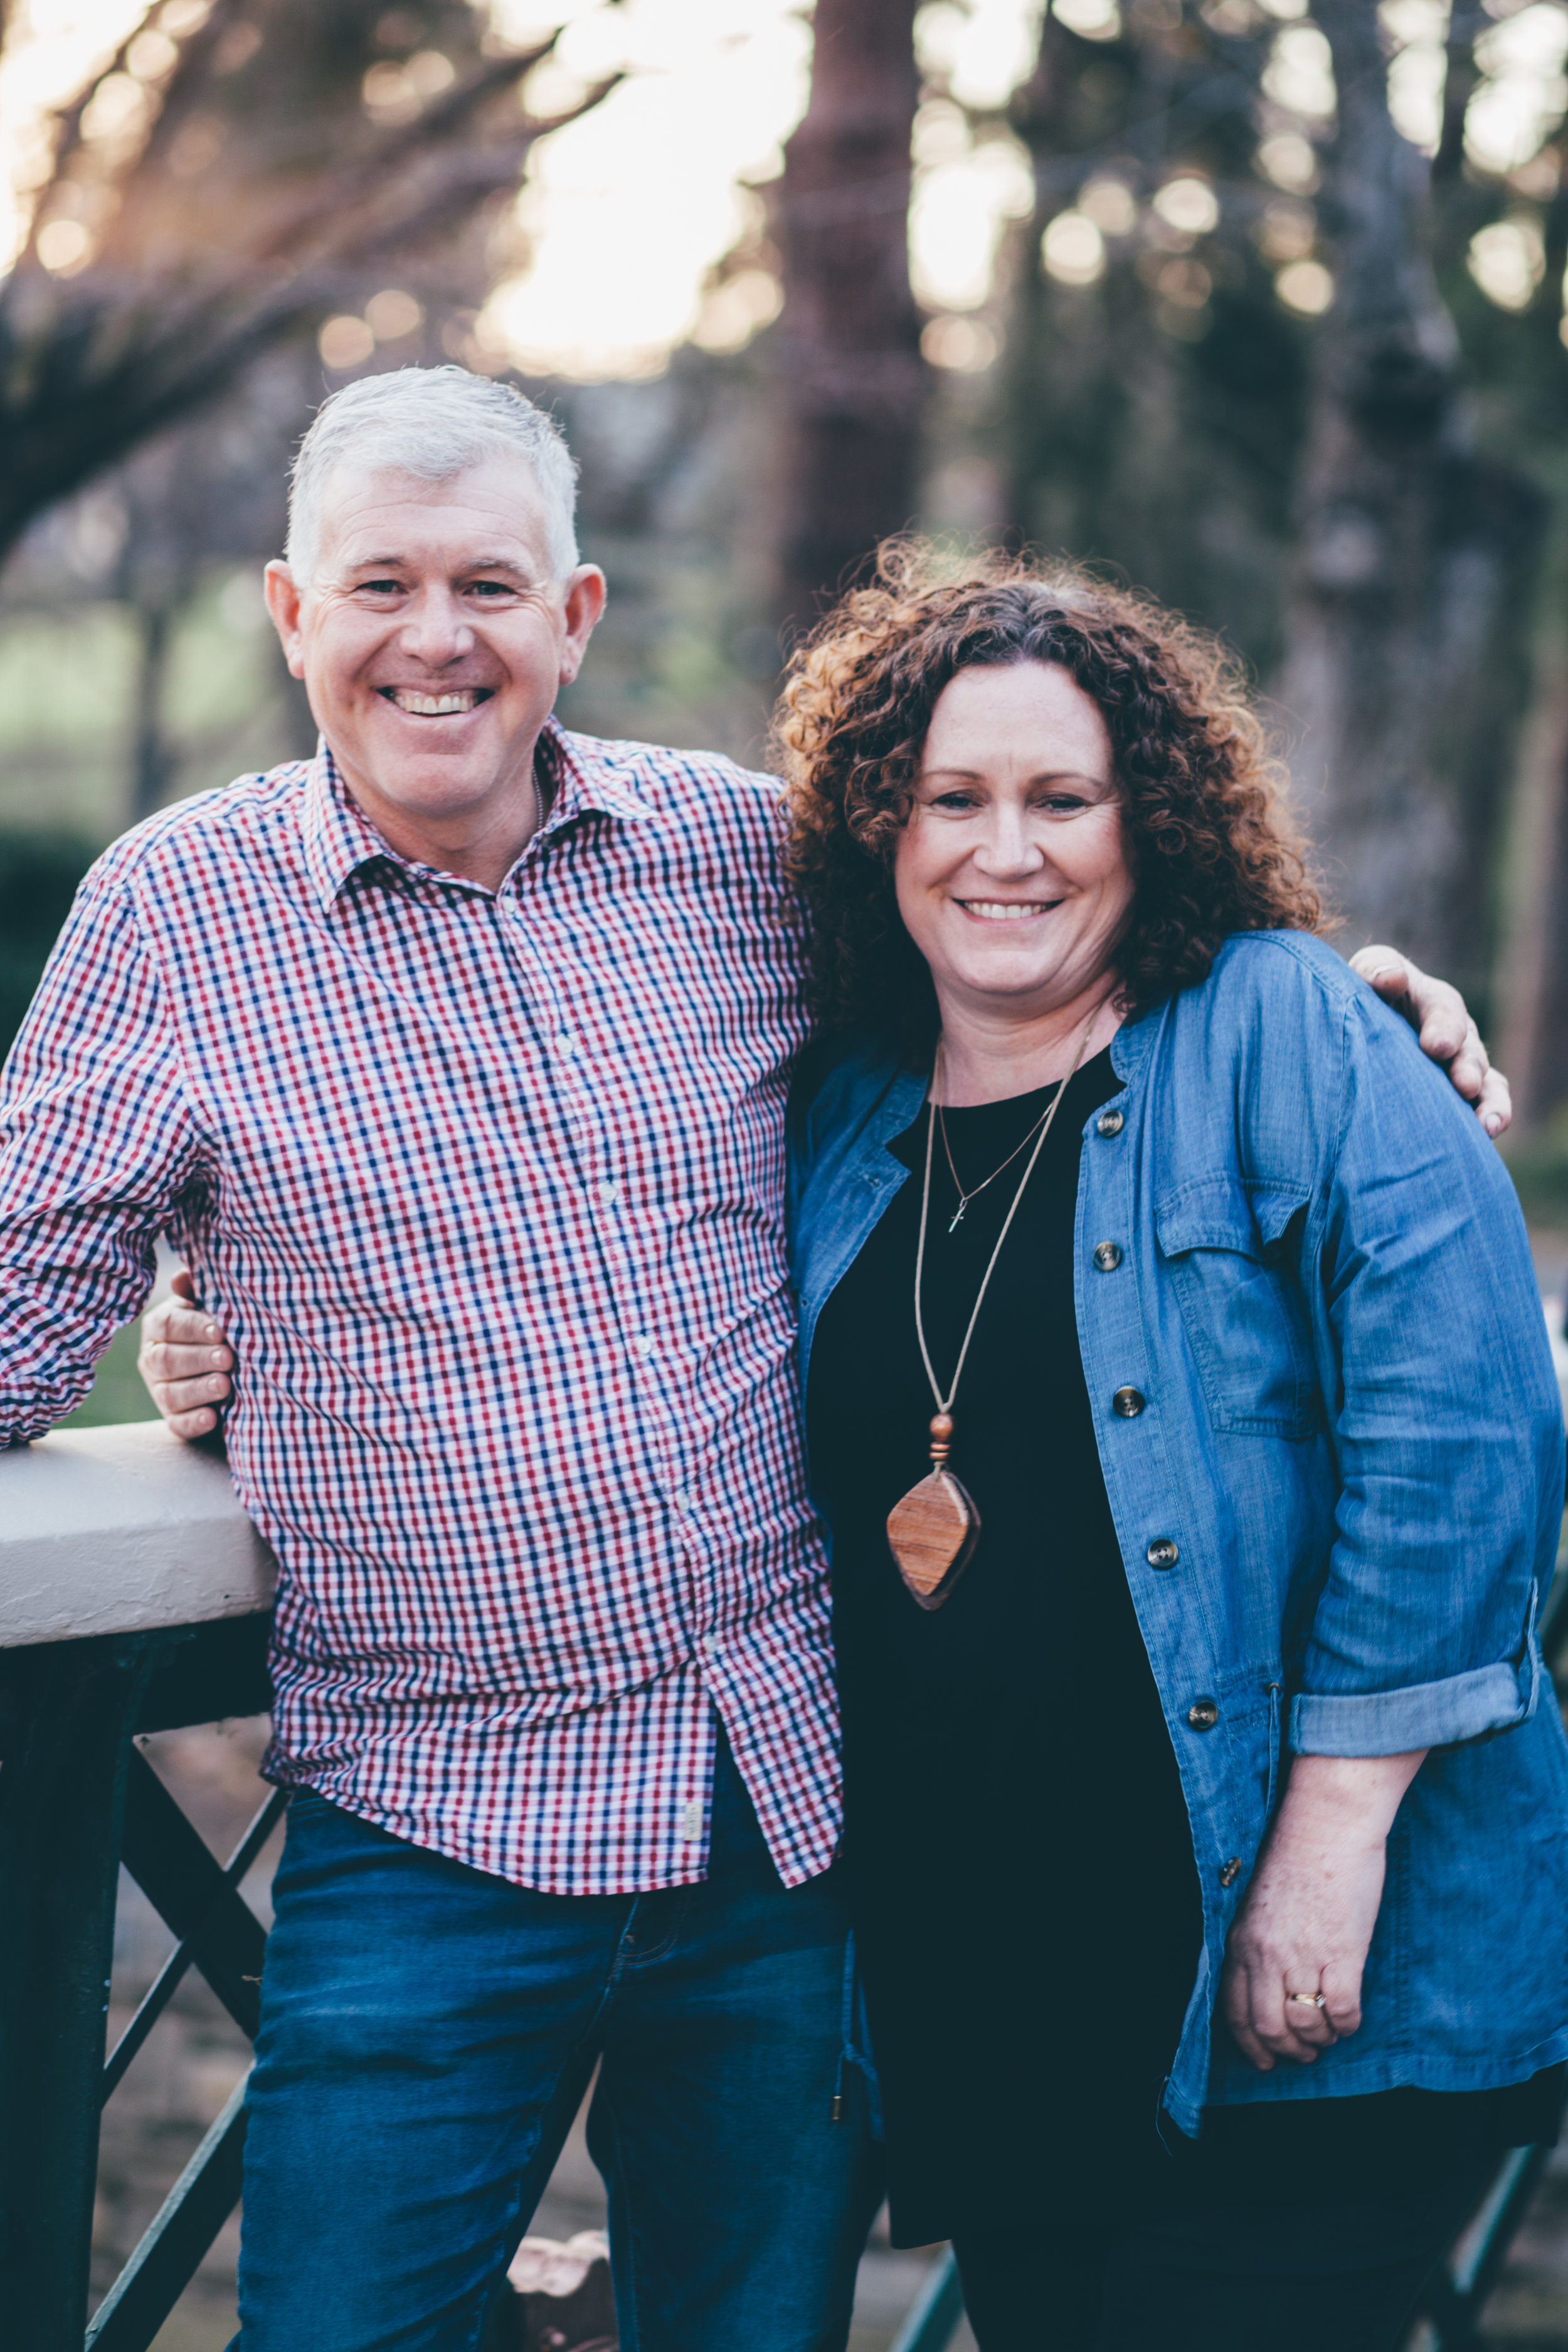 Pastor Michelle Heather:  Michelle oversees the Pastoral Care at Victory Church; including new people & new Christians. She also leads the worship team and assists with our Local Missions.  E: michelle@victorycc.com.au